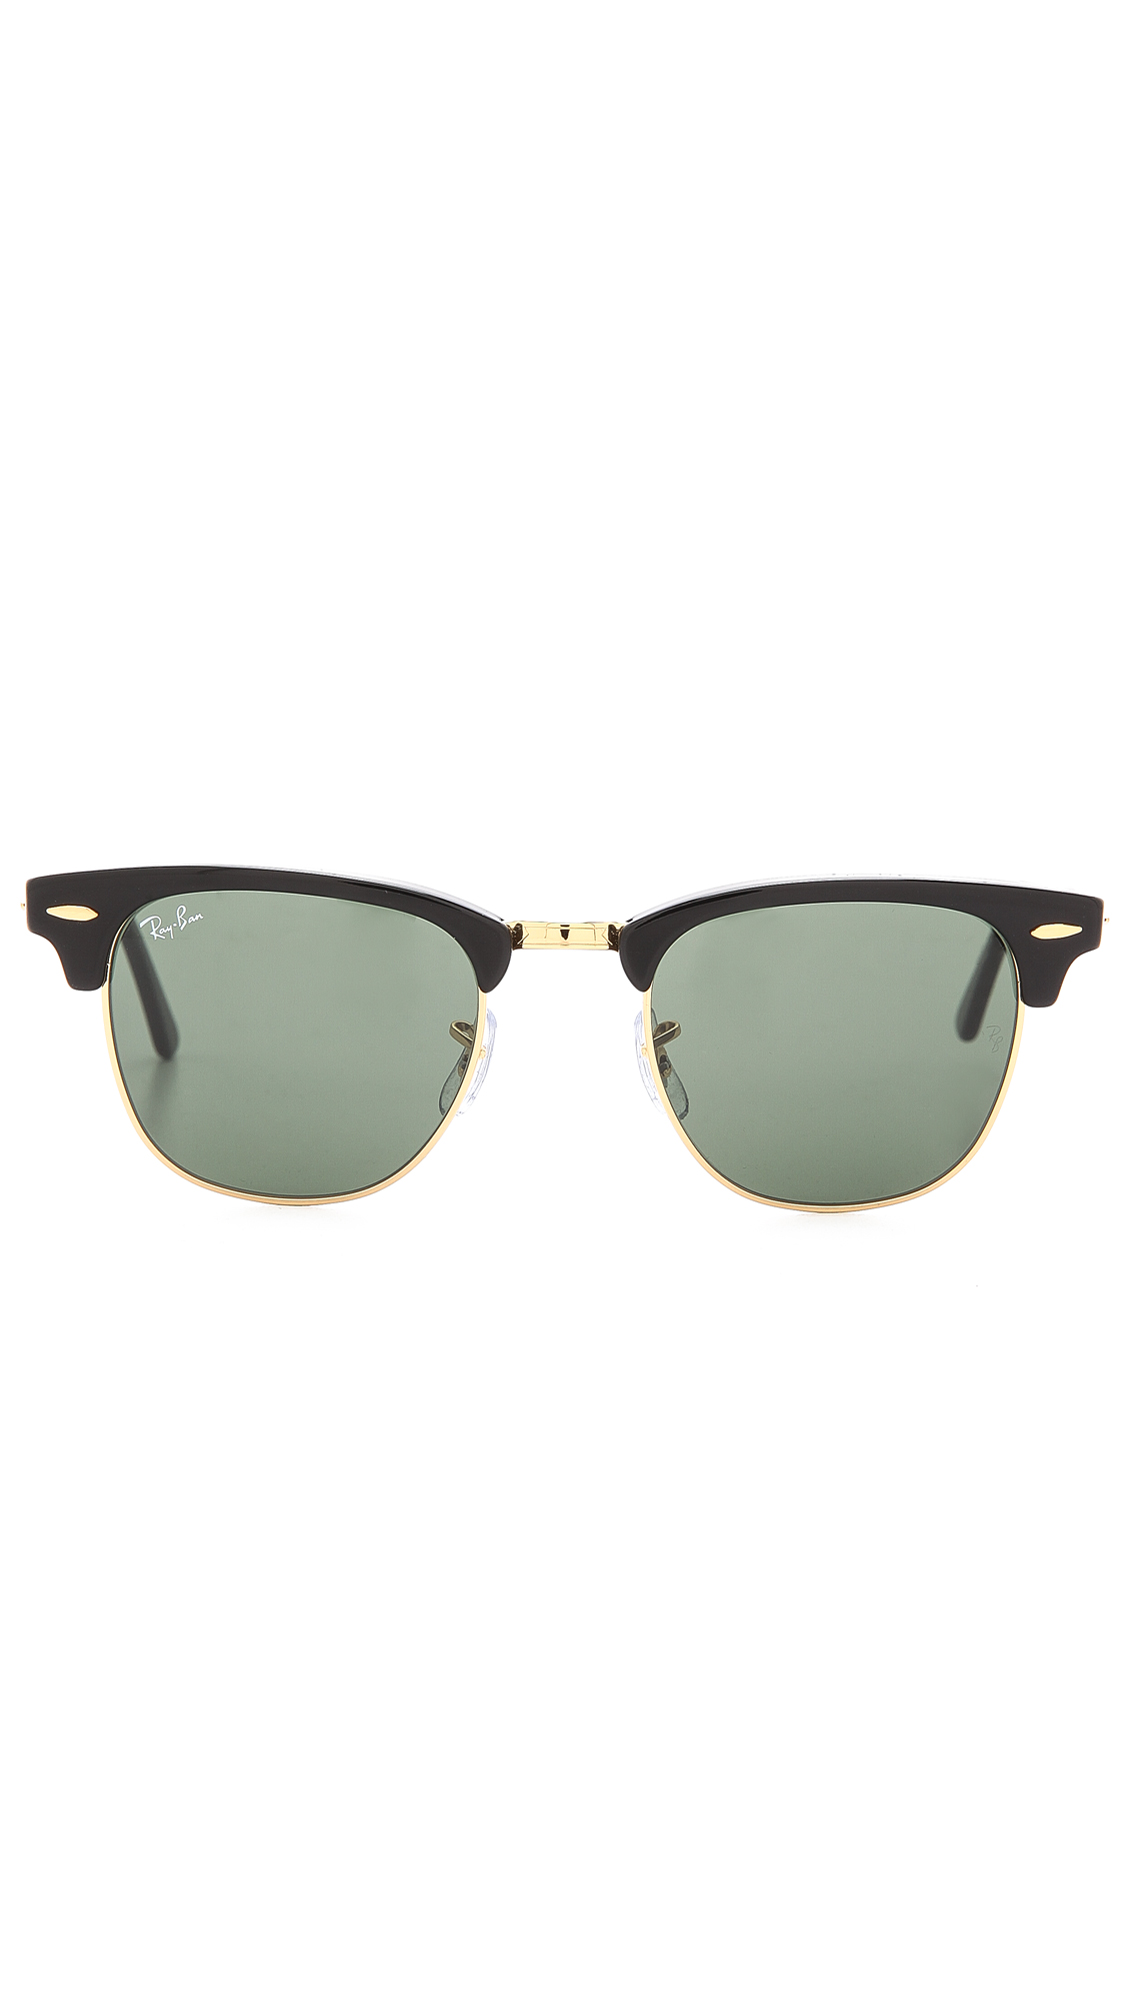 Shop Ray Ban Clubmaster Classic Sunglasses In BlackGold